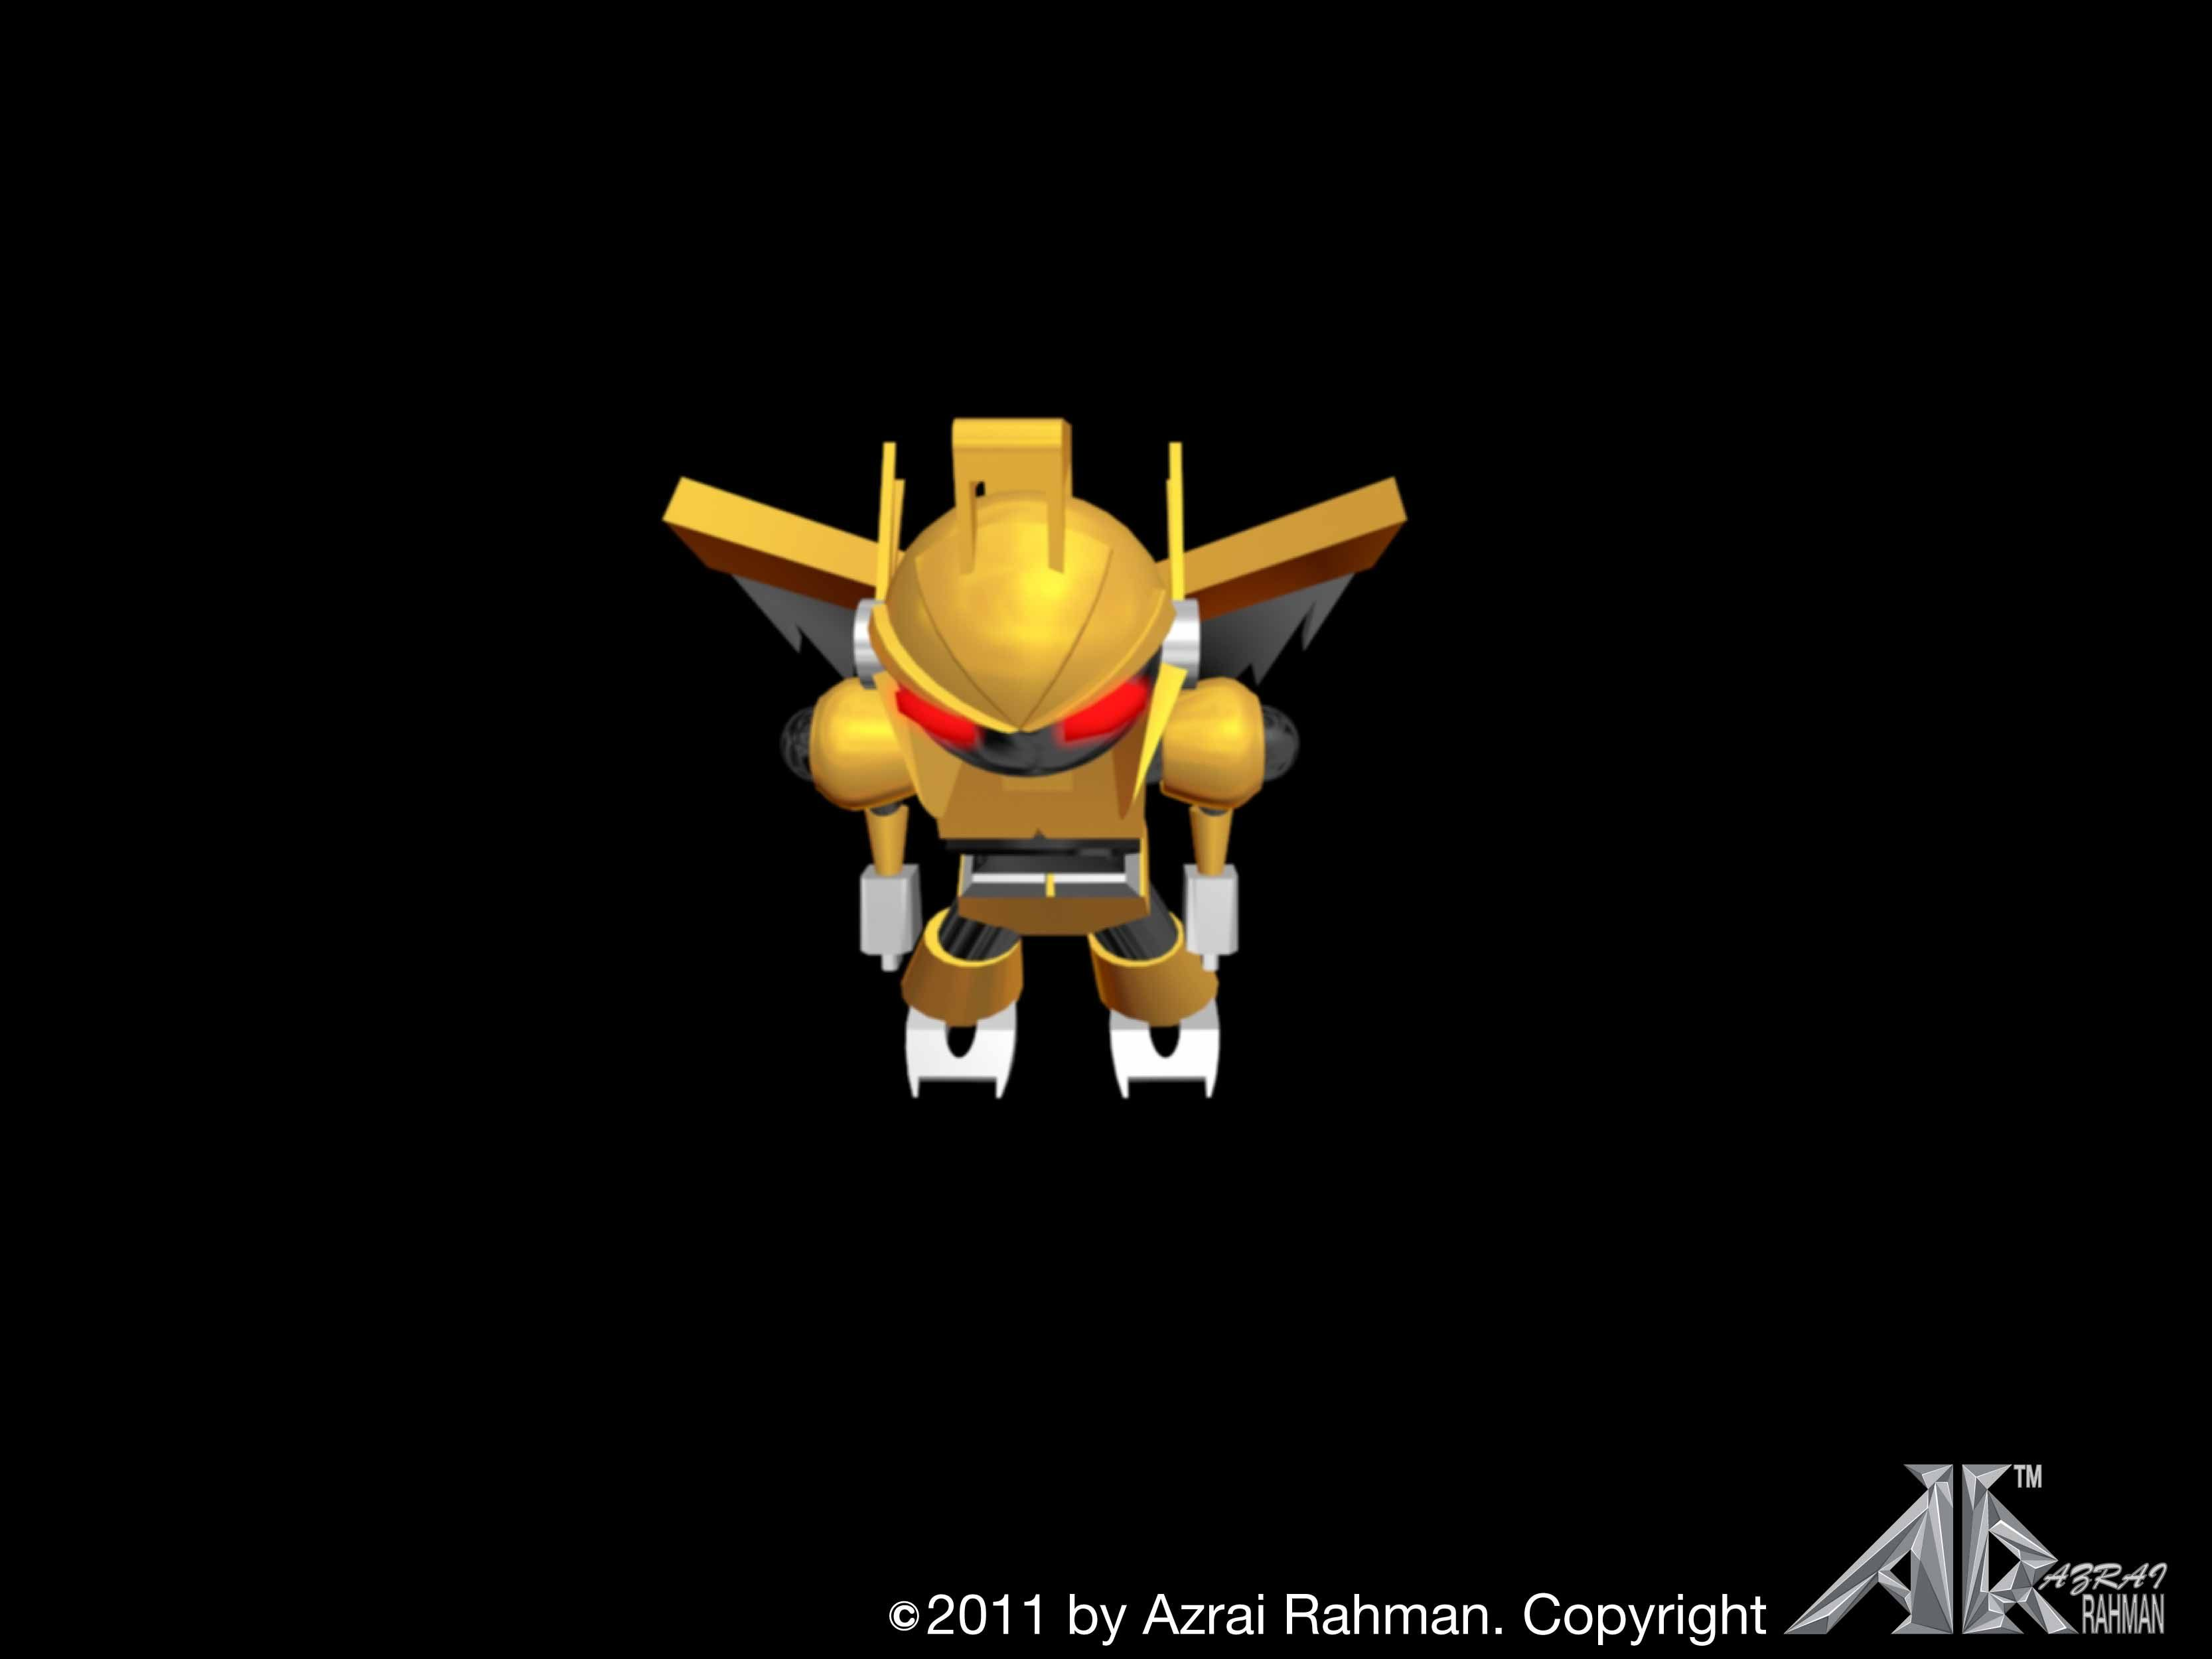 TITLE YELLOW ROBO SOFTWARE USED AUTODESK 3D MAX 2010